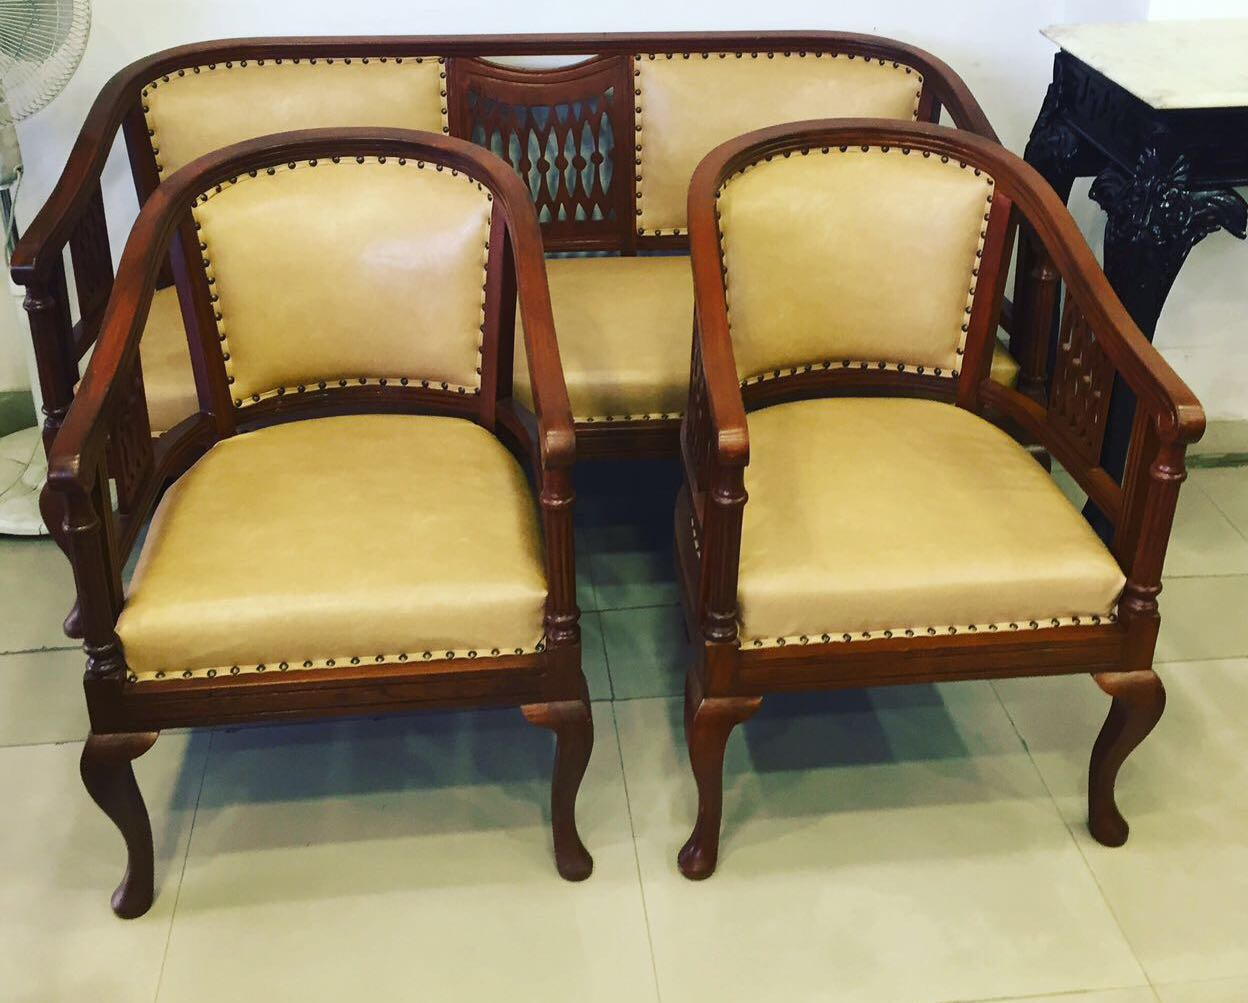 Antique Rosewood Chairs In Hyderabad In Hyderabad We Are The